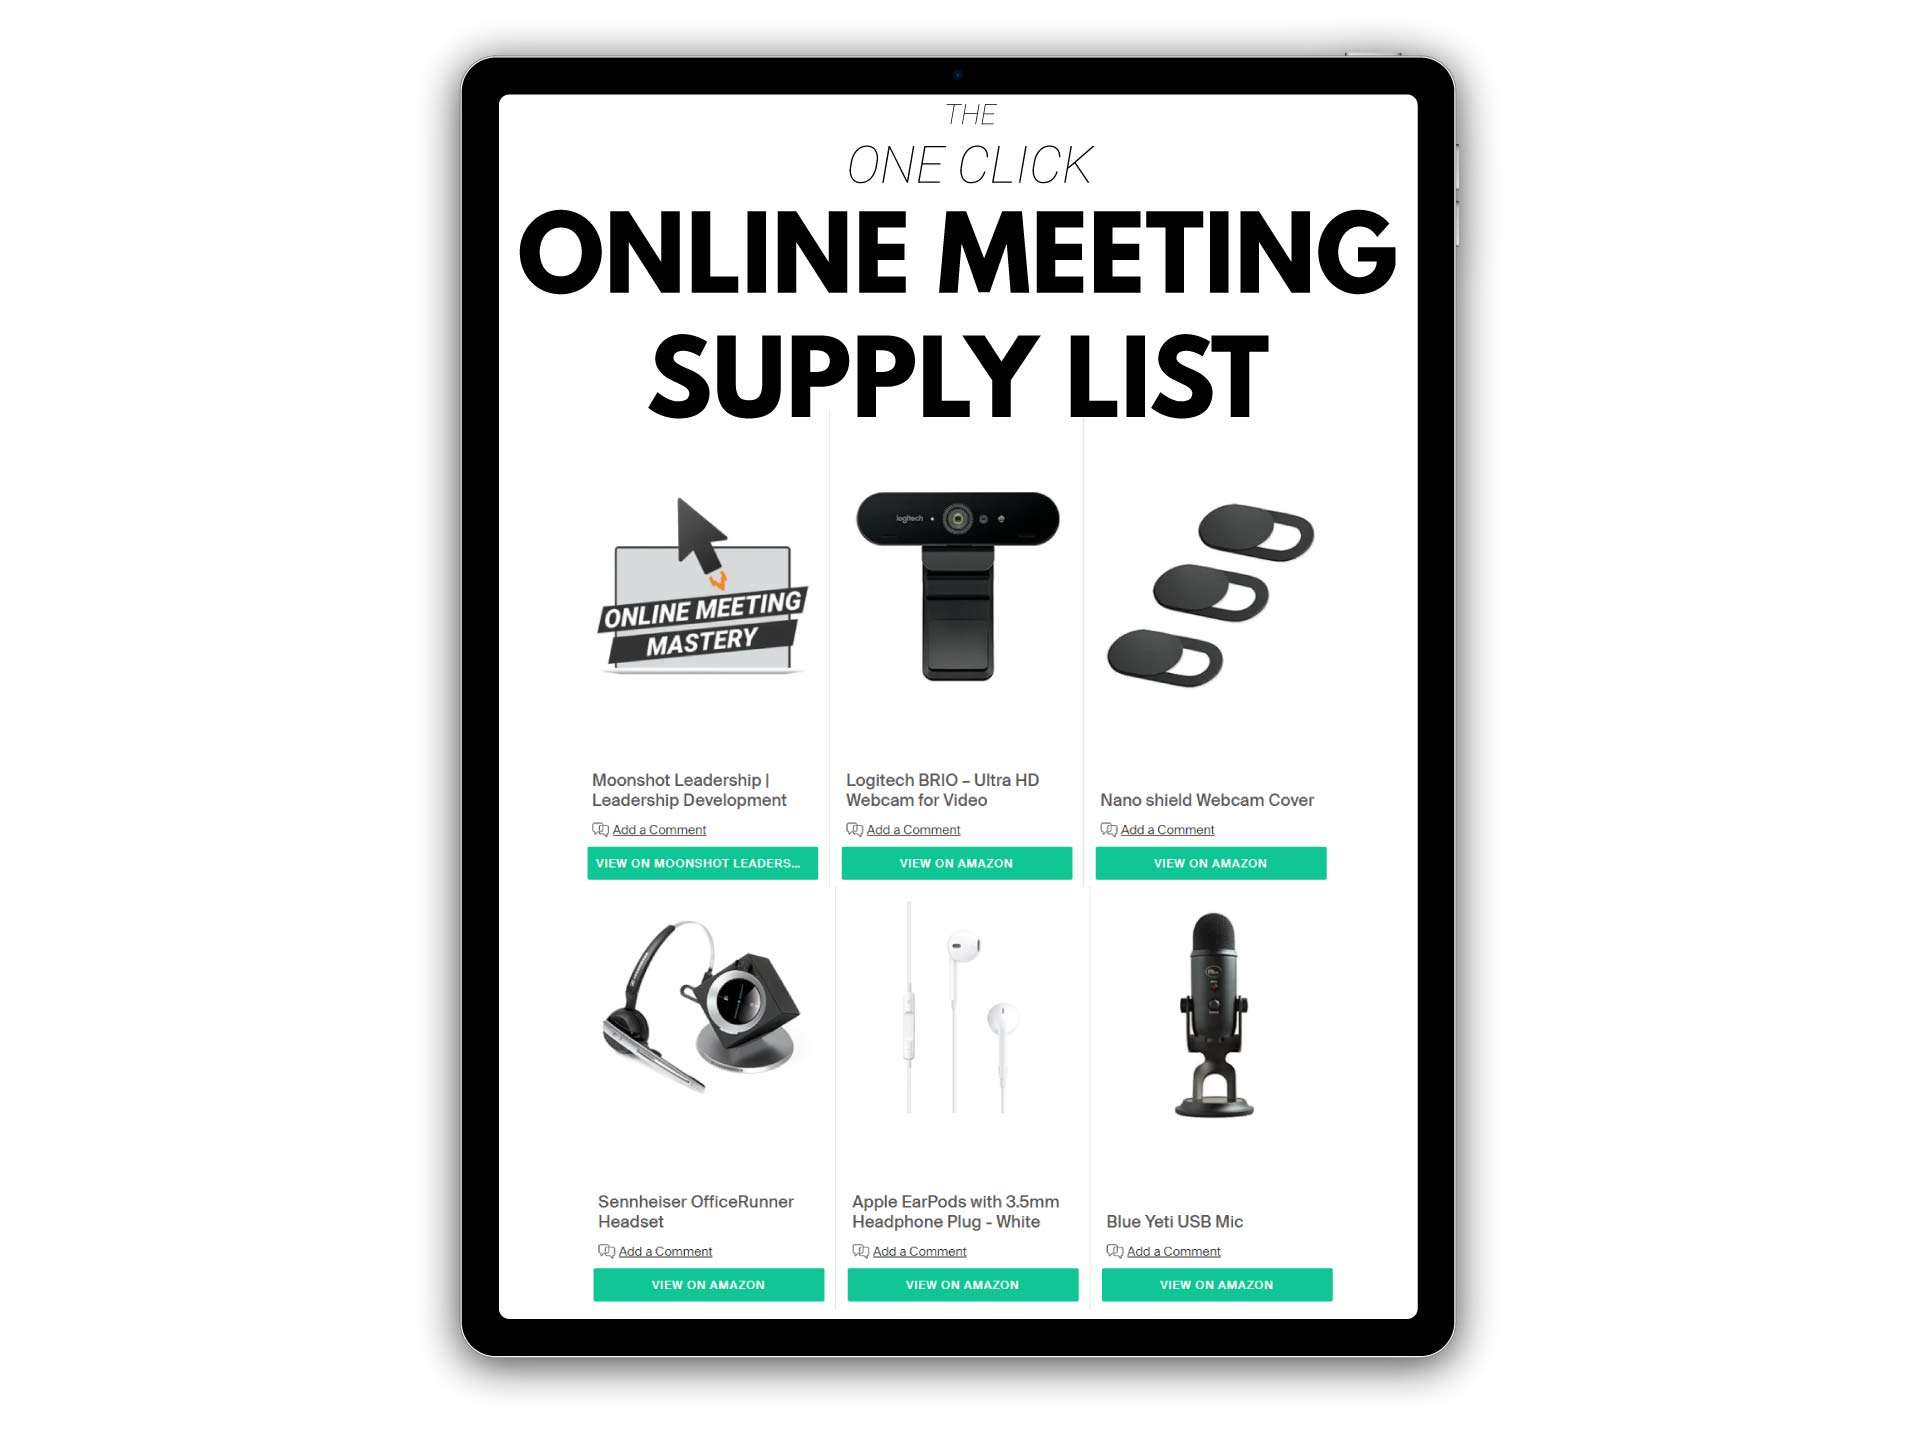 One-Click-Online-Meeting-Supply-List